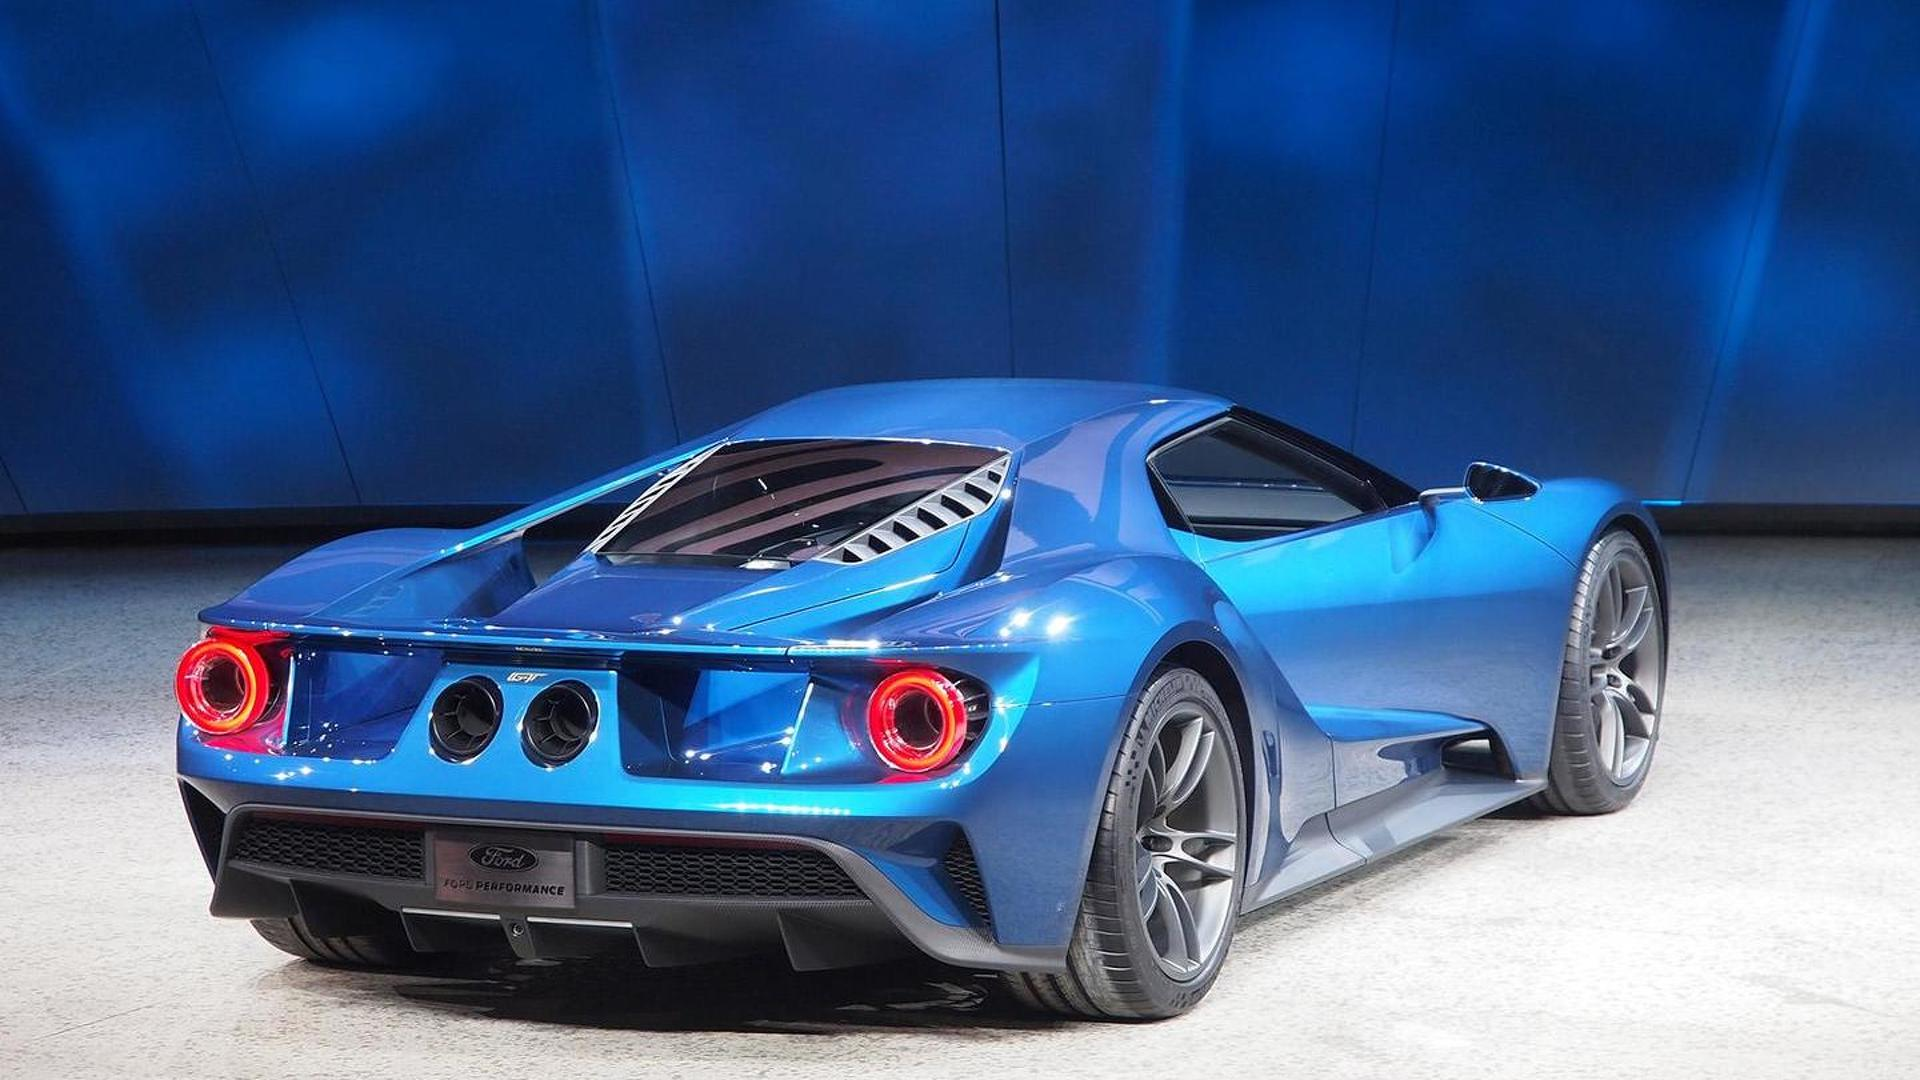 2016 ford gt sport blue wallpaper 2017 ford gt concept car beautiful - 2016 Ford Gt Sport Blue Wallpaper 2017 Ford Gt Concept Car Beautiful 29